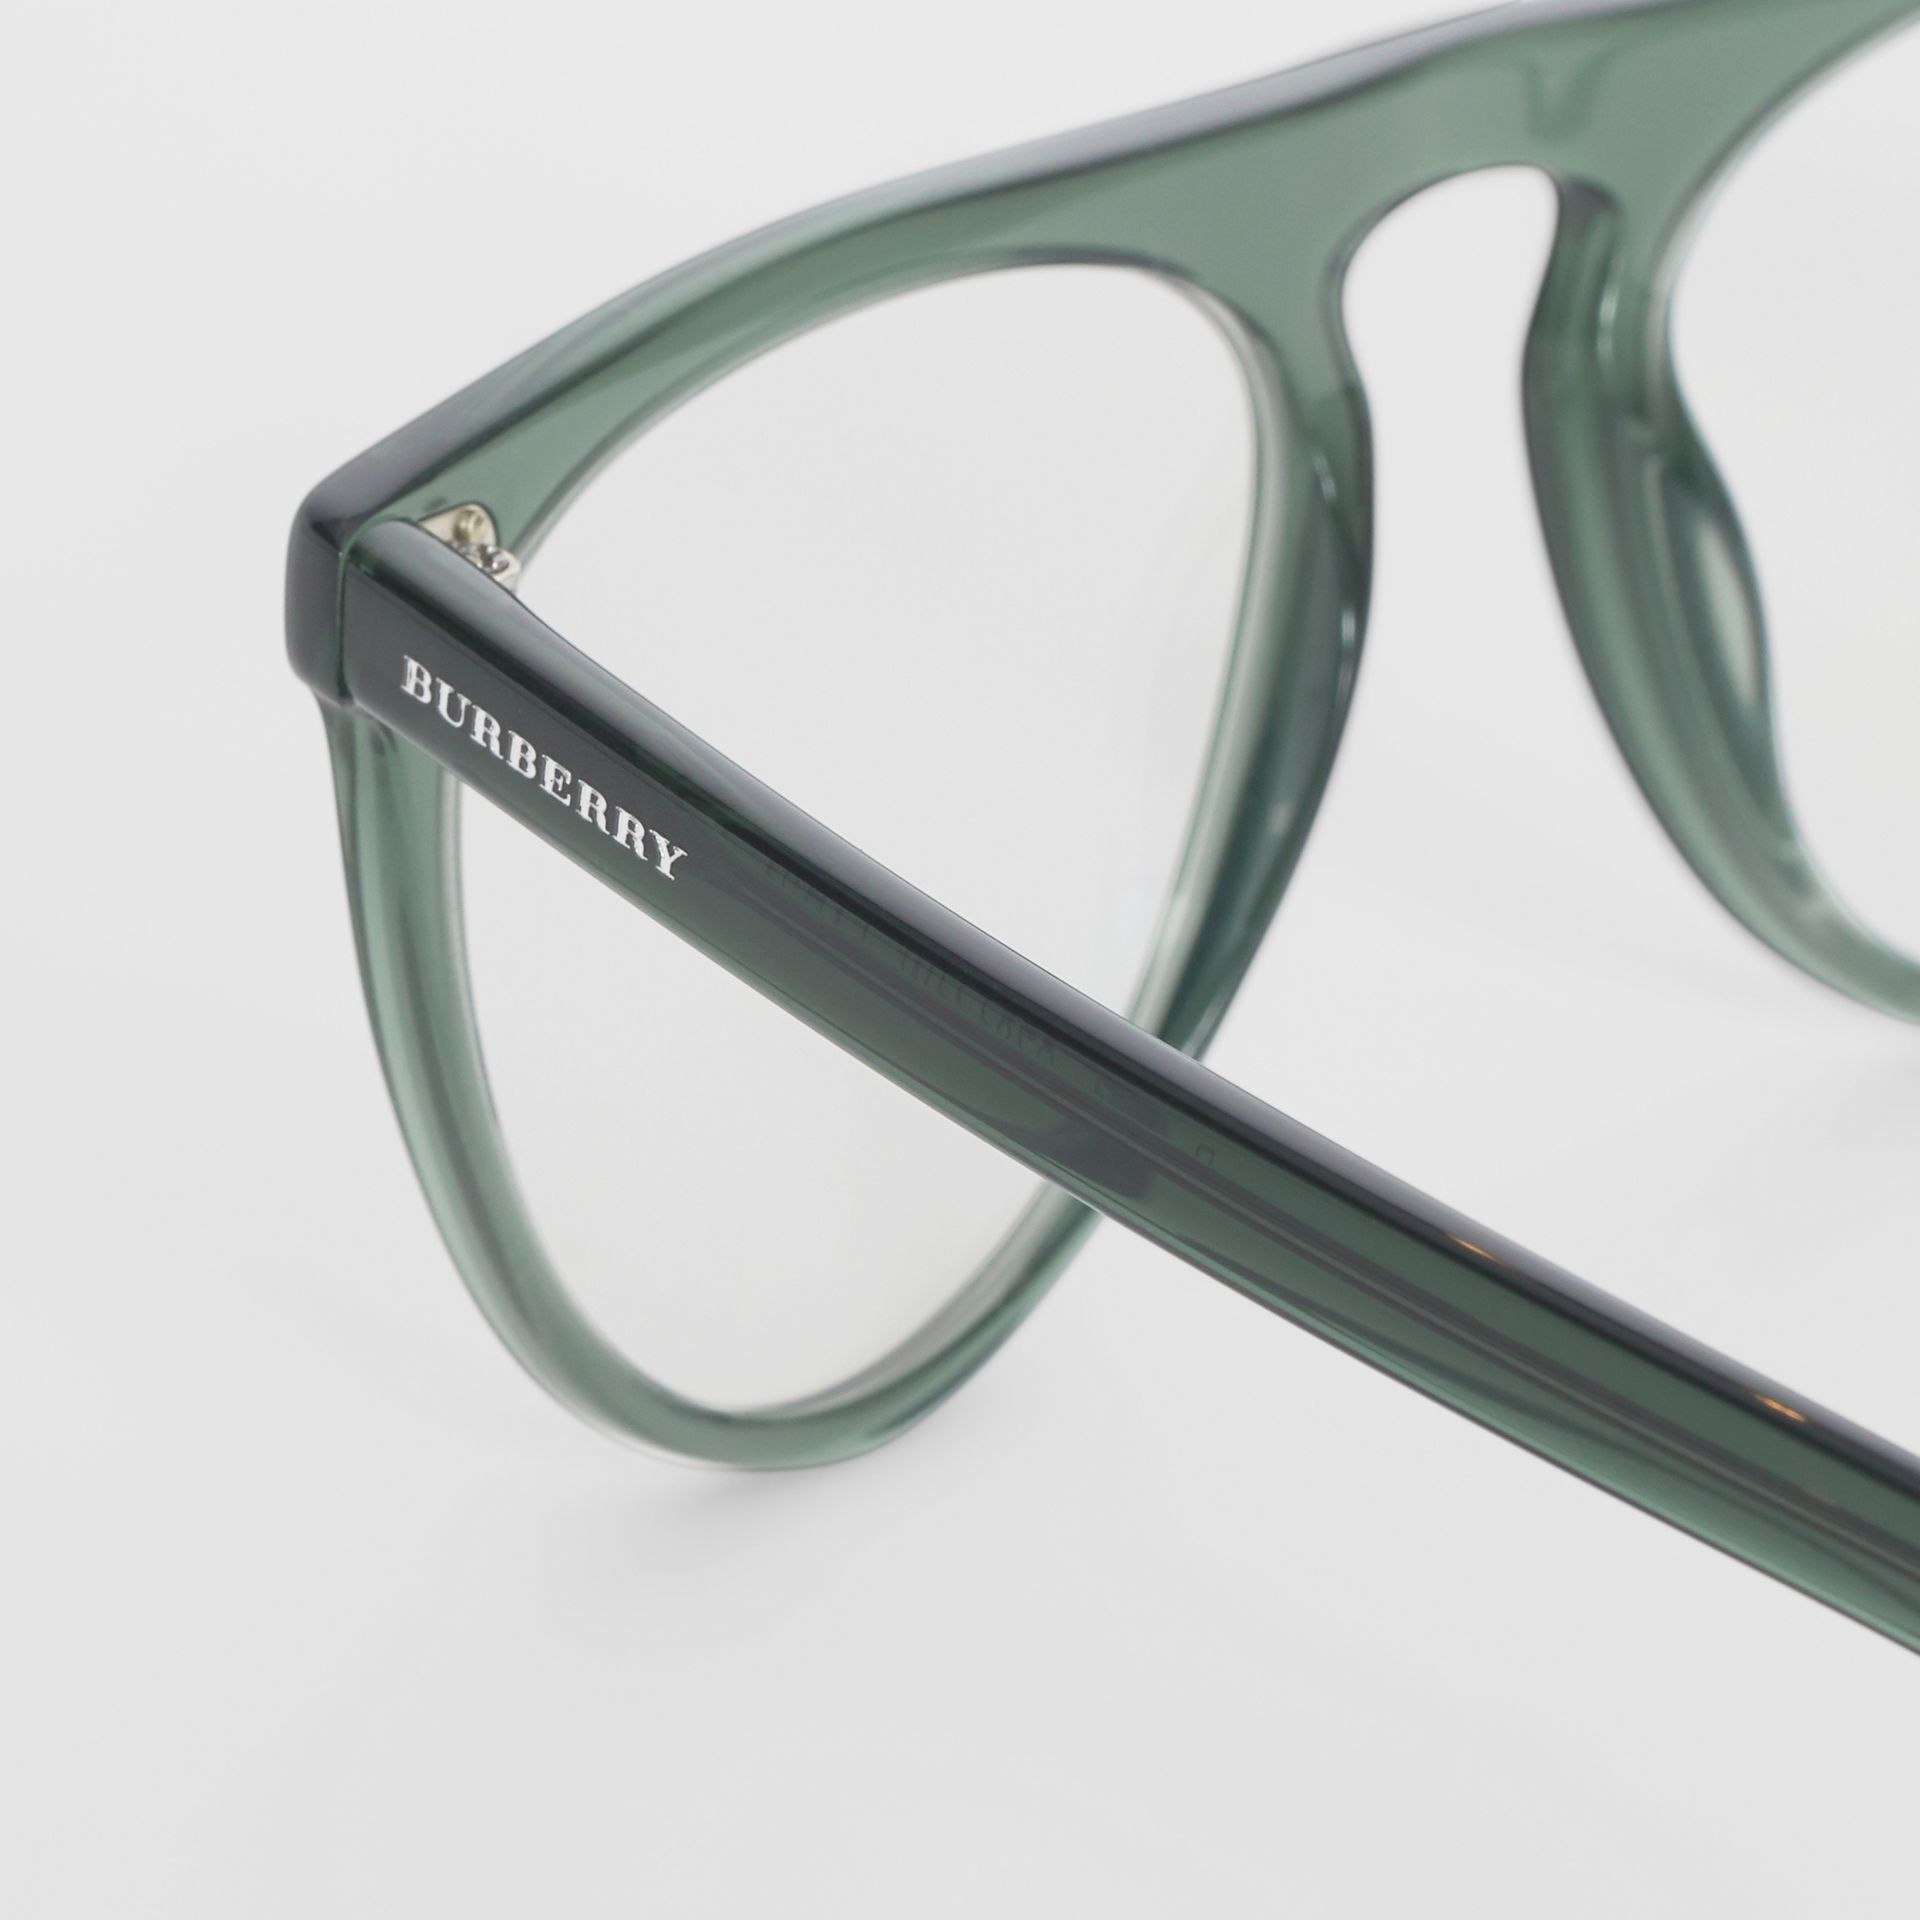 Keyhole D-shaped Optical Frames in Green - Men | Burberry - gallery image 1